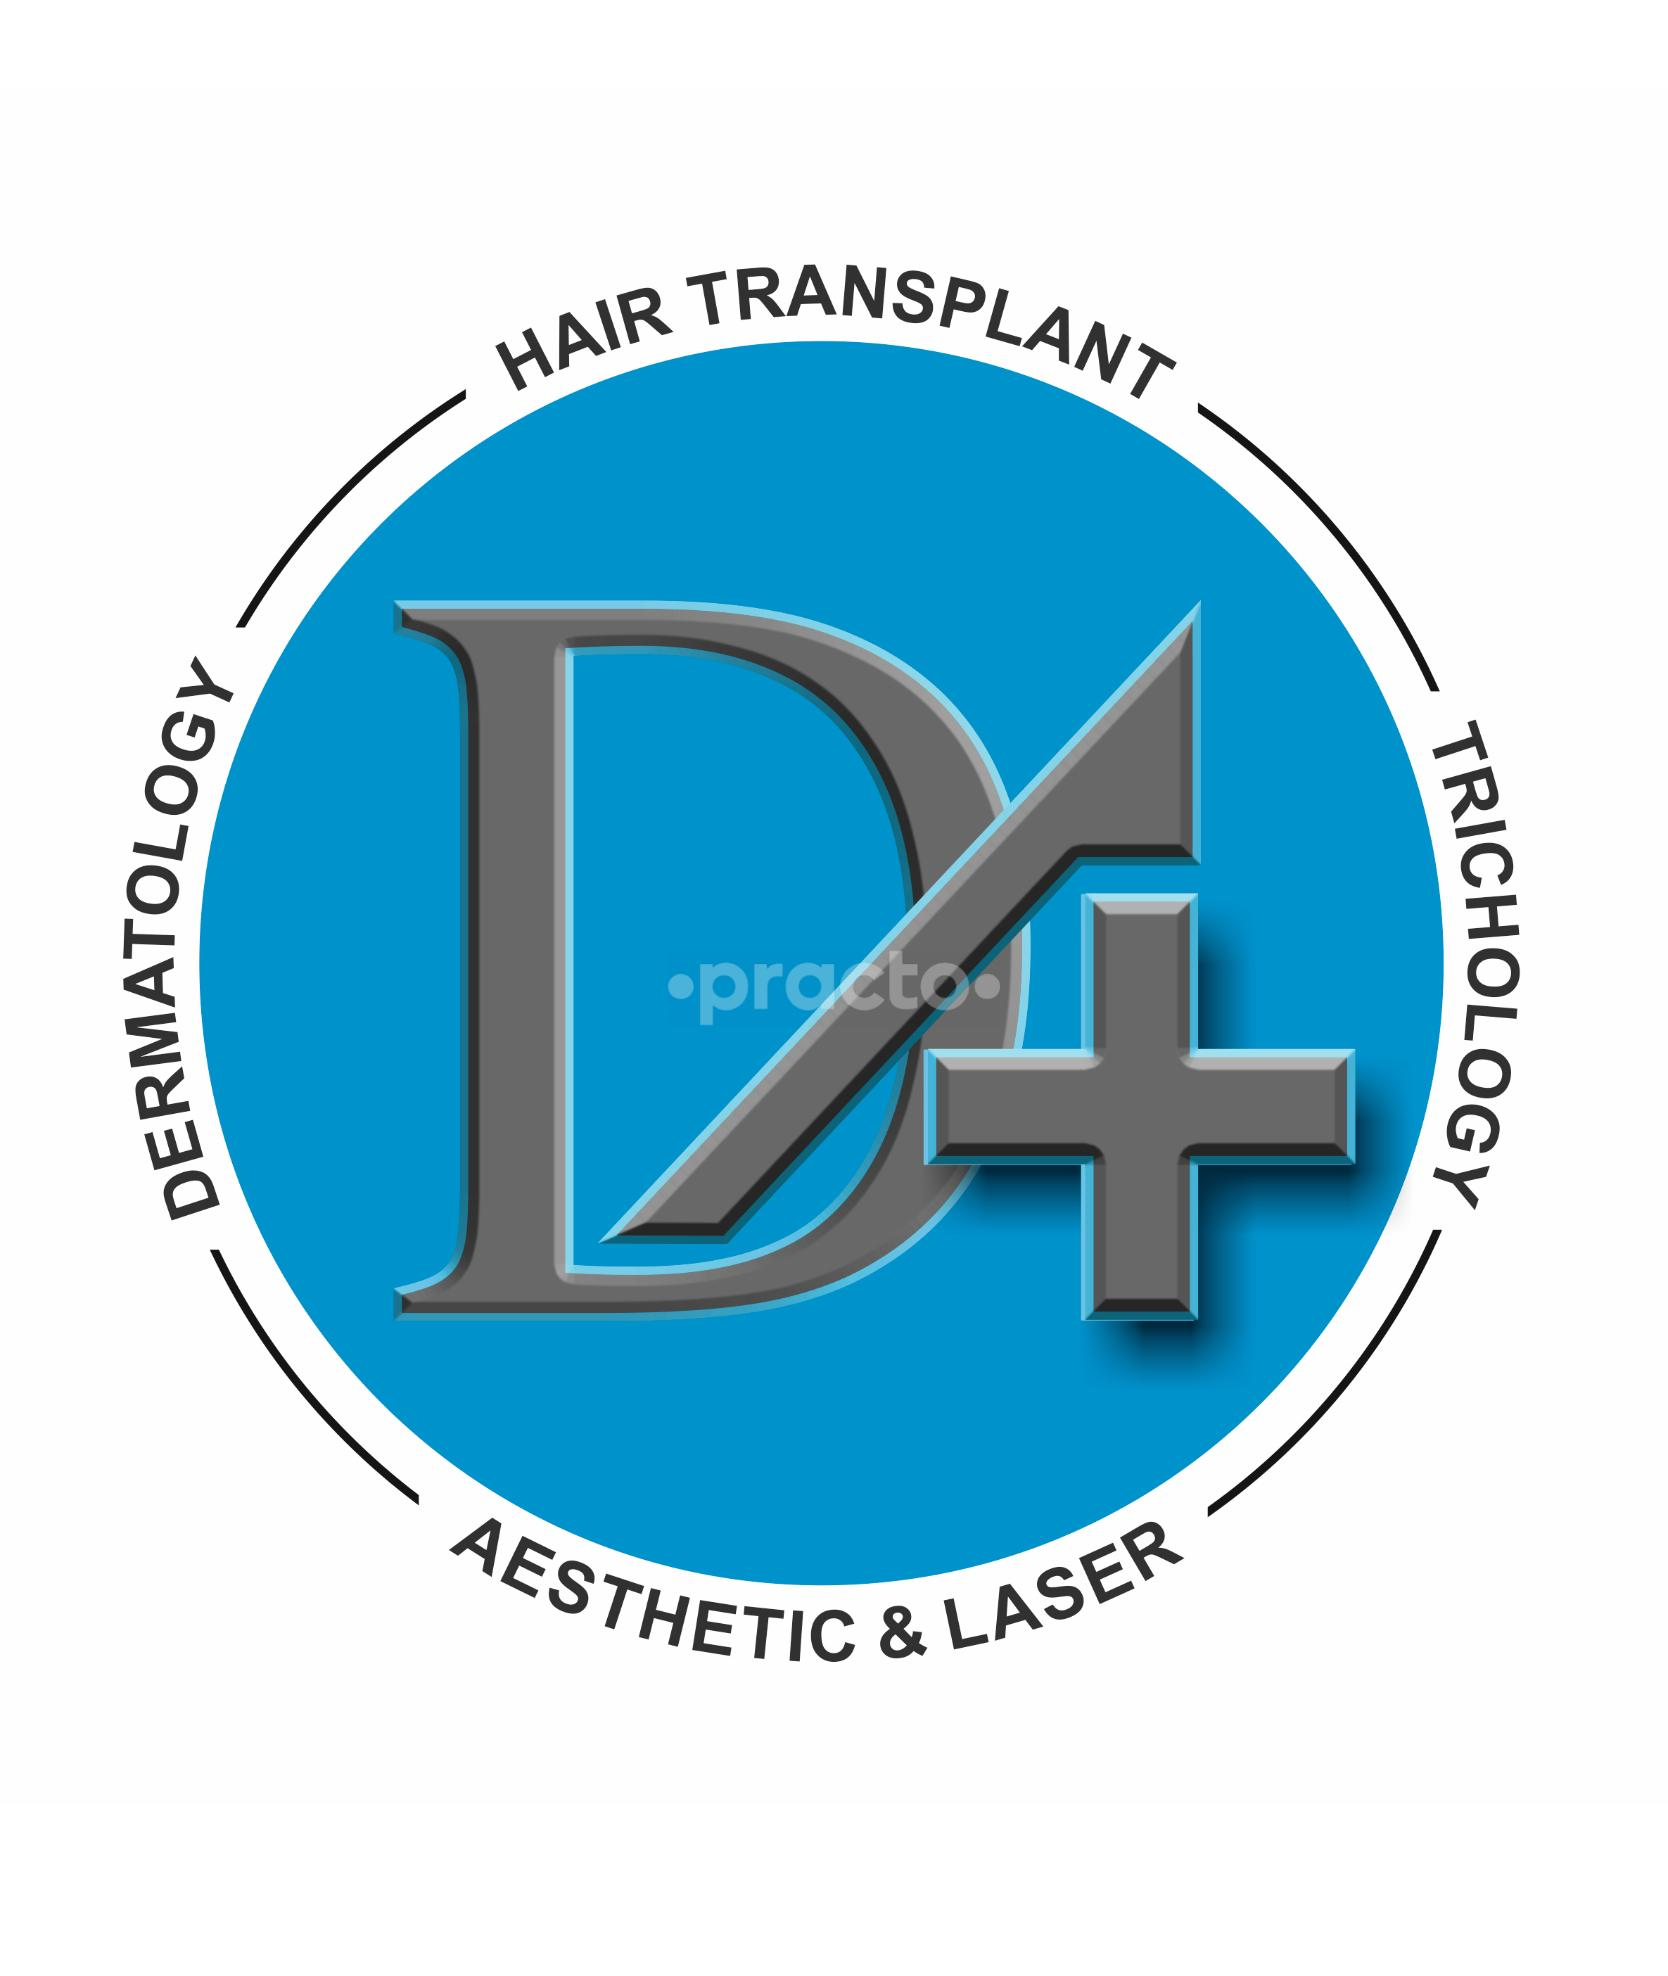 Dermavenue Advanced Skin And Hair Clinic